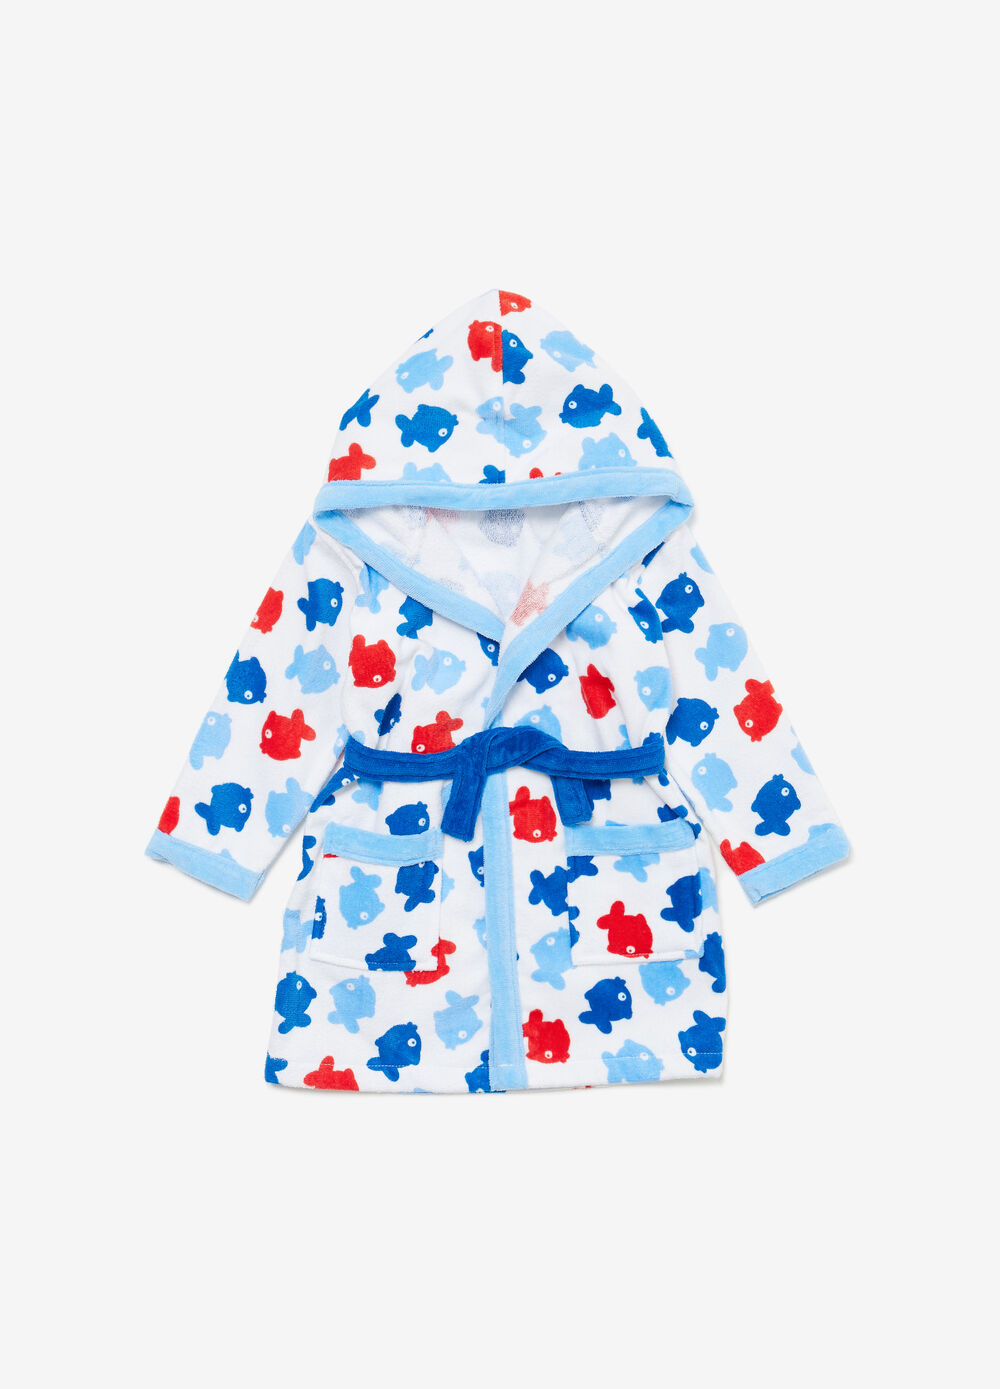 100% cotton fish bathrobe